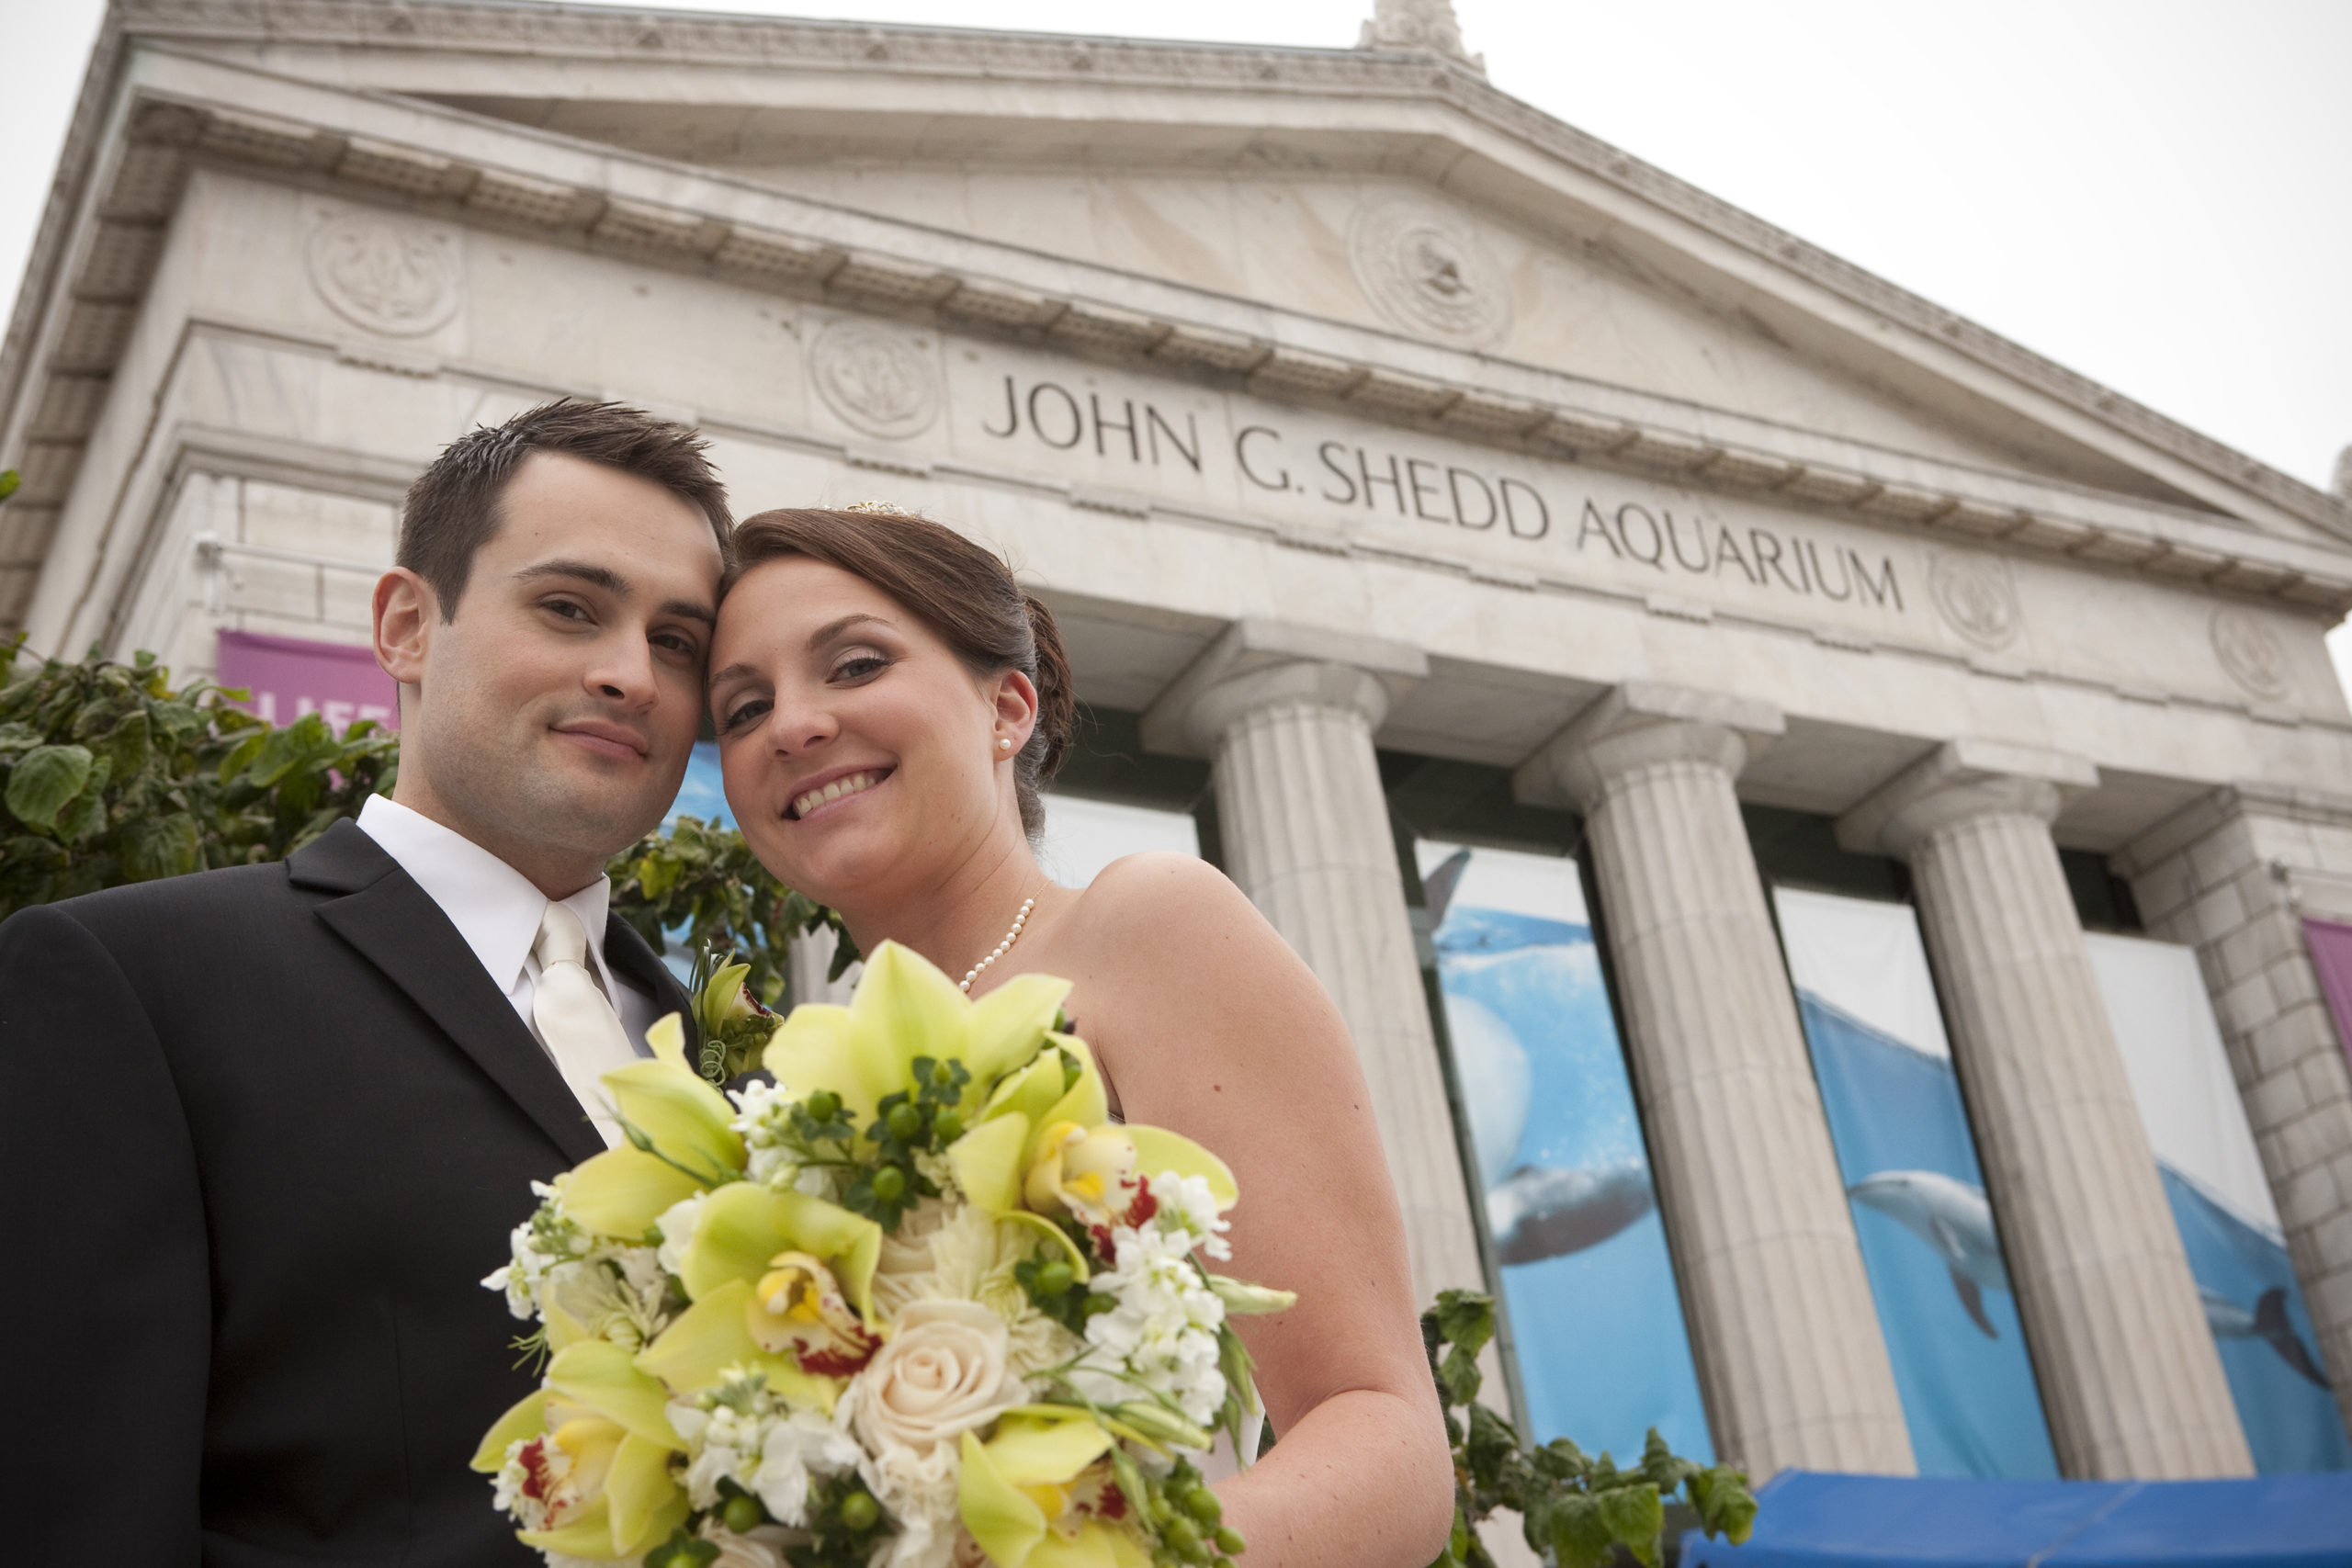 Married couple at Shedd Aquarium